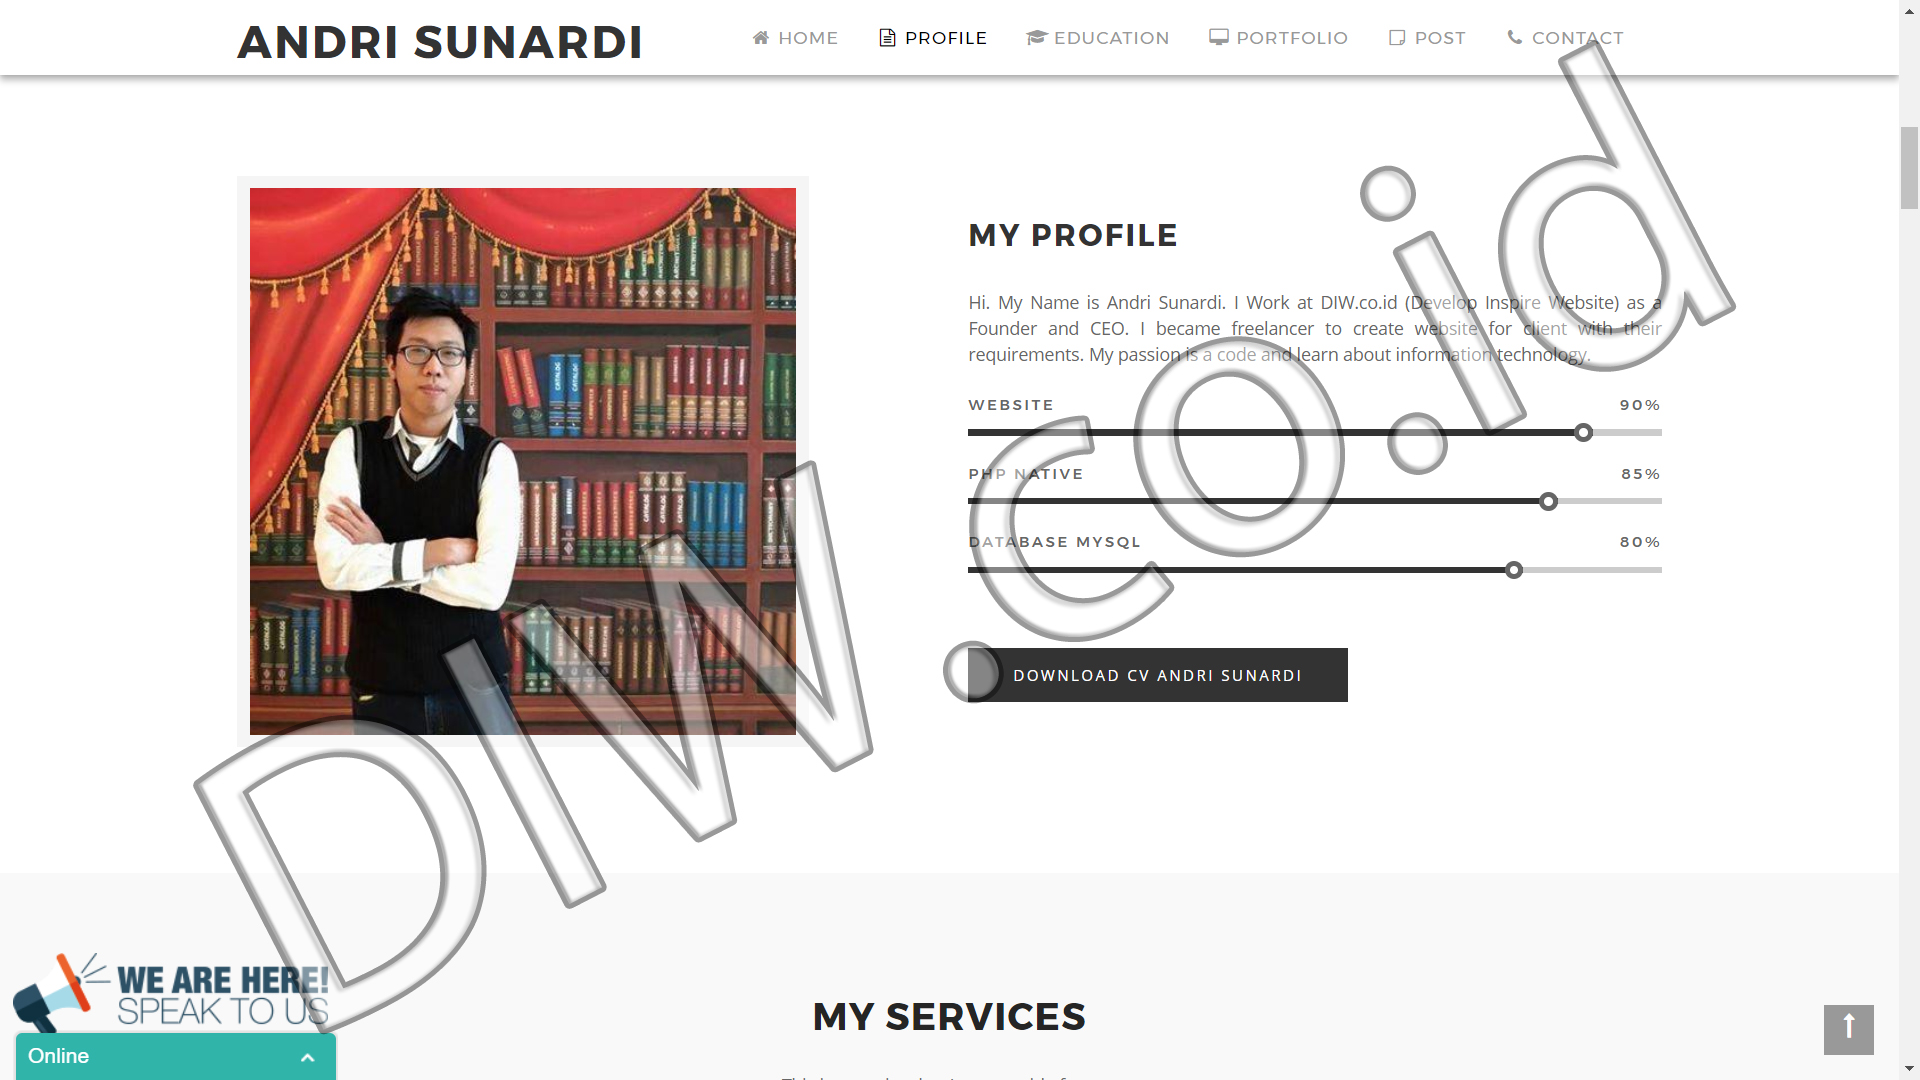 Portfolio 2 - Andri Sunardi - Andri Sunardi - Freelancer - Web Developer - CEO DIW.co.id